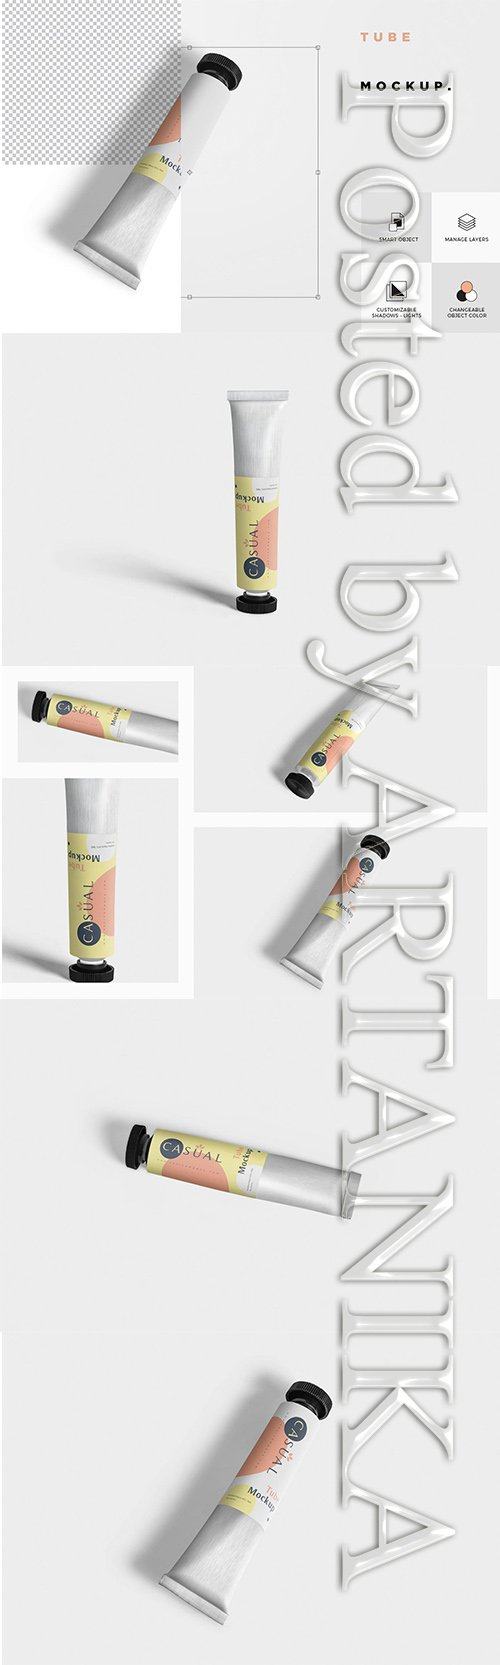 Metal Cream Tube Mockups